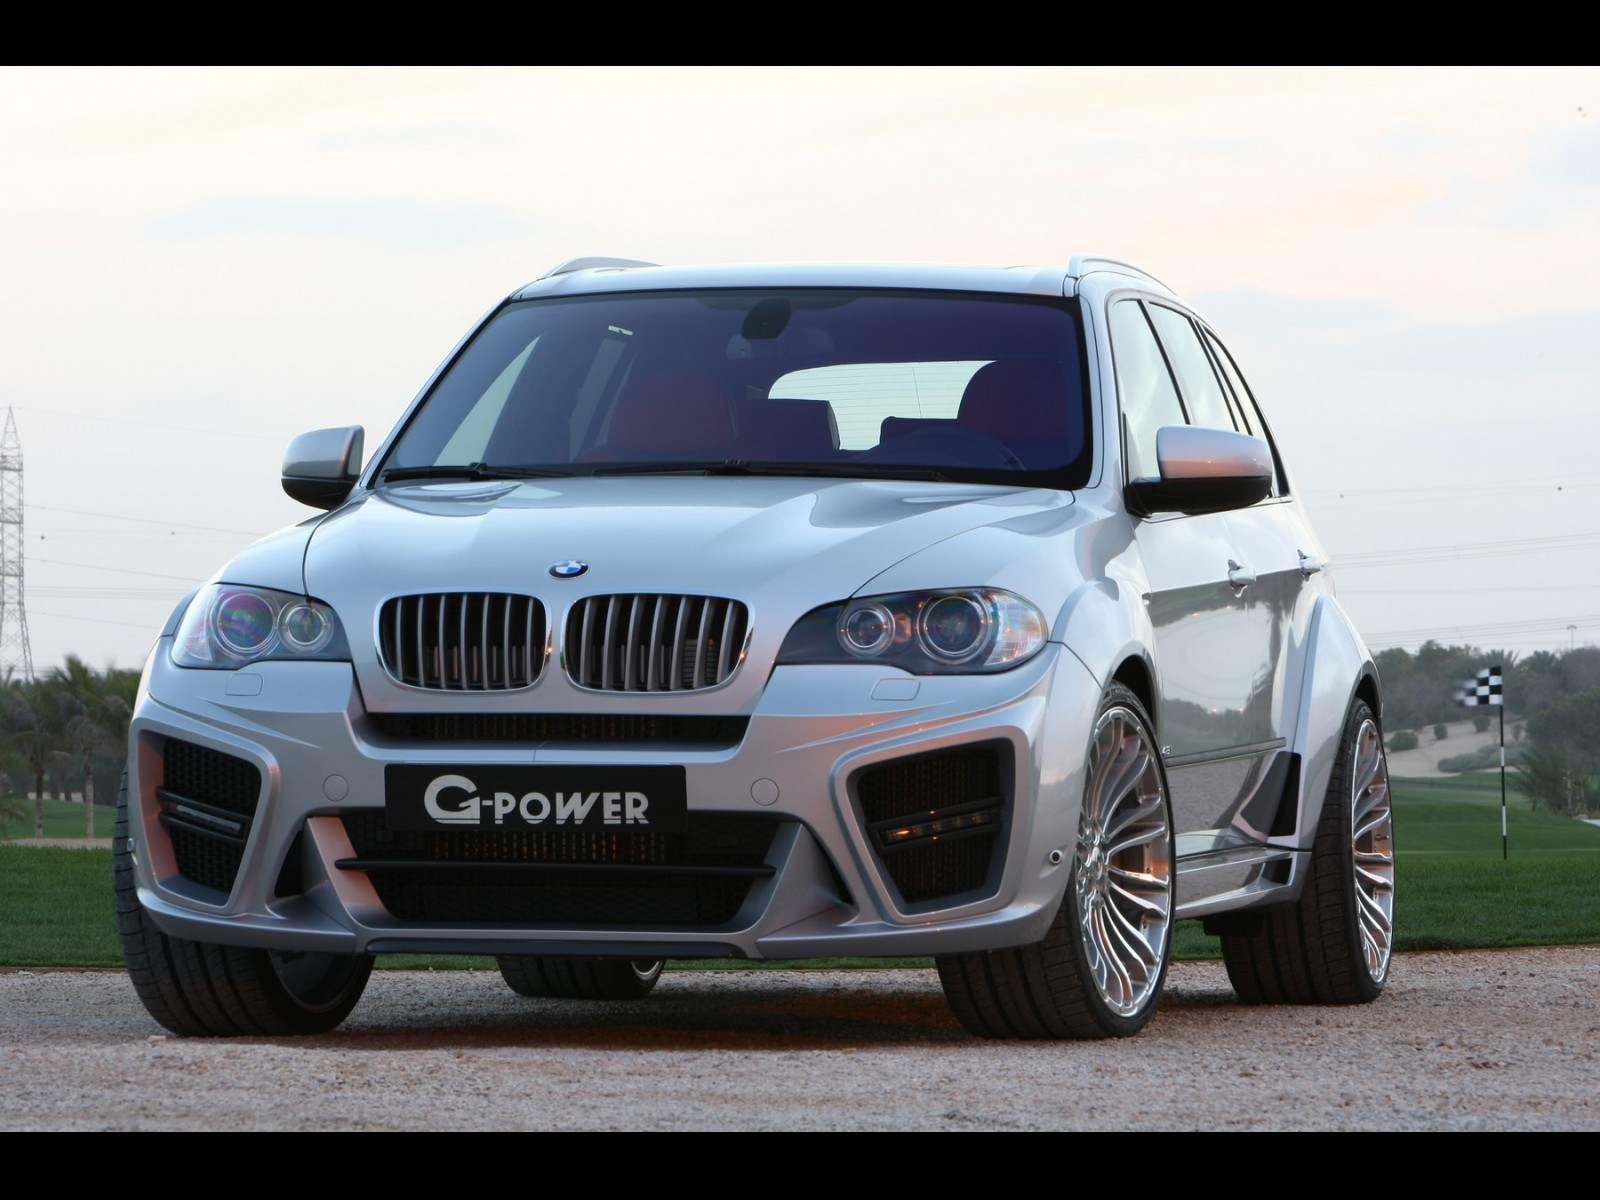 g-power-typhoon-based-on-bmw-x5-07.jpg